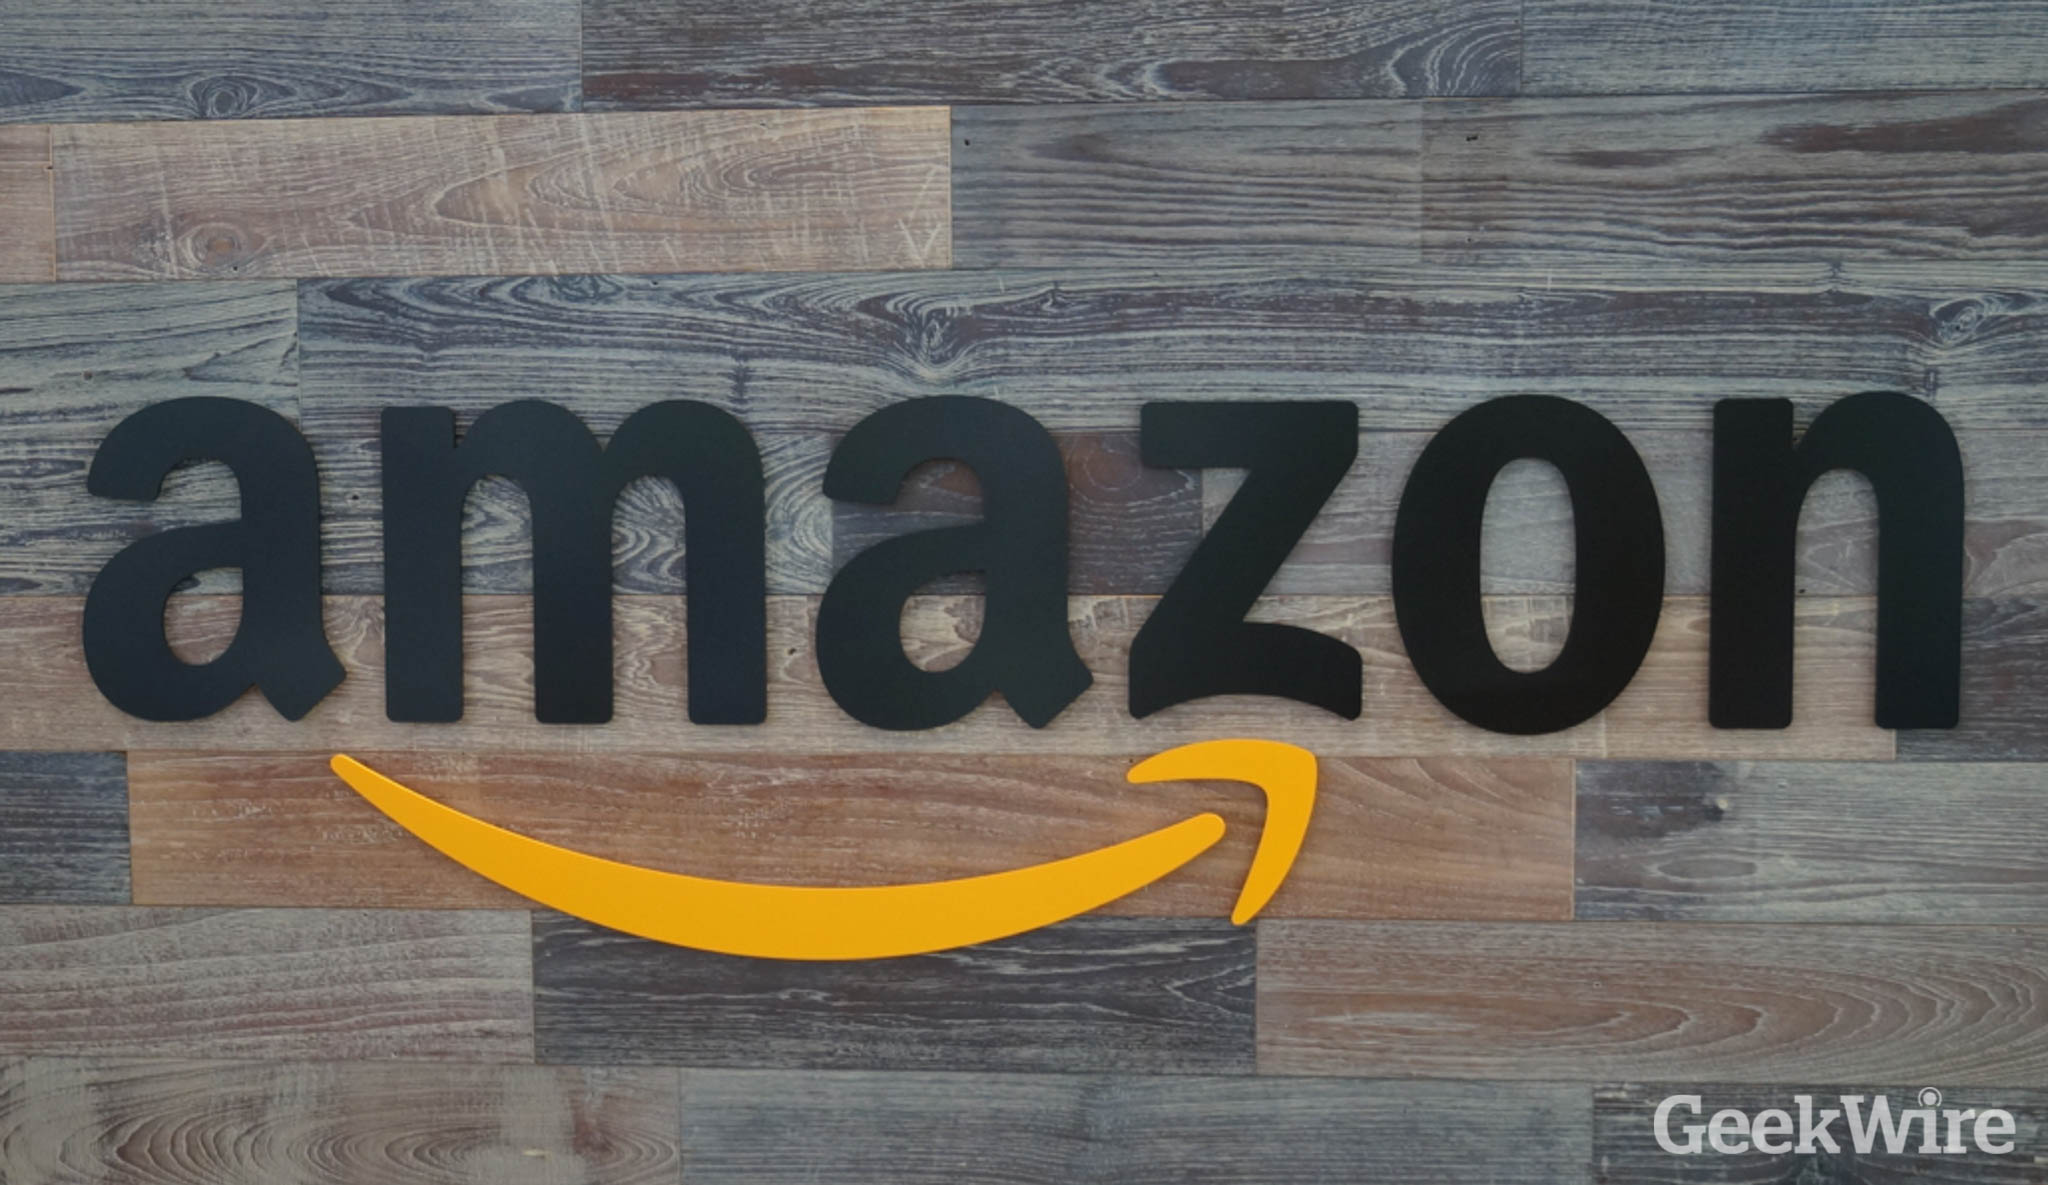 Amazon: 'The inequitable and brutal treatment of Black people in our country must stop'